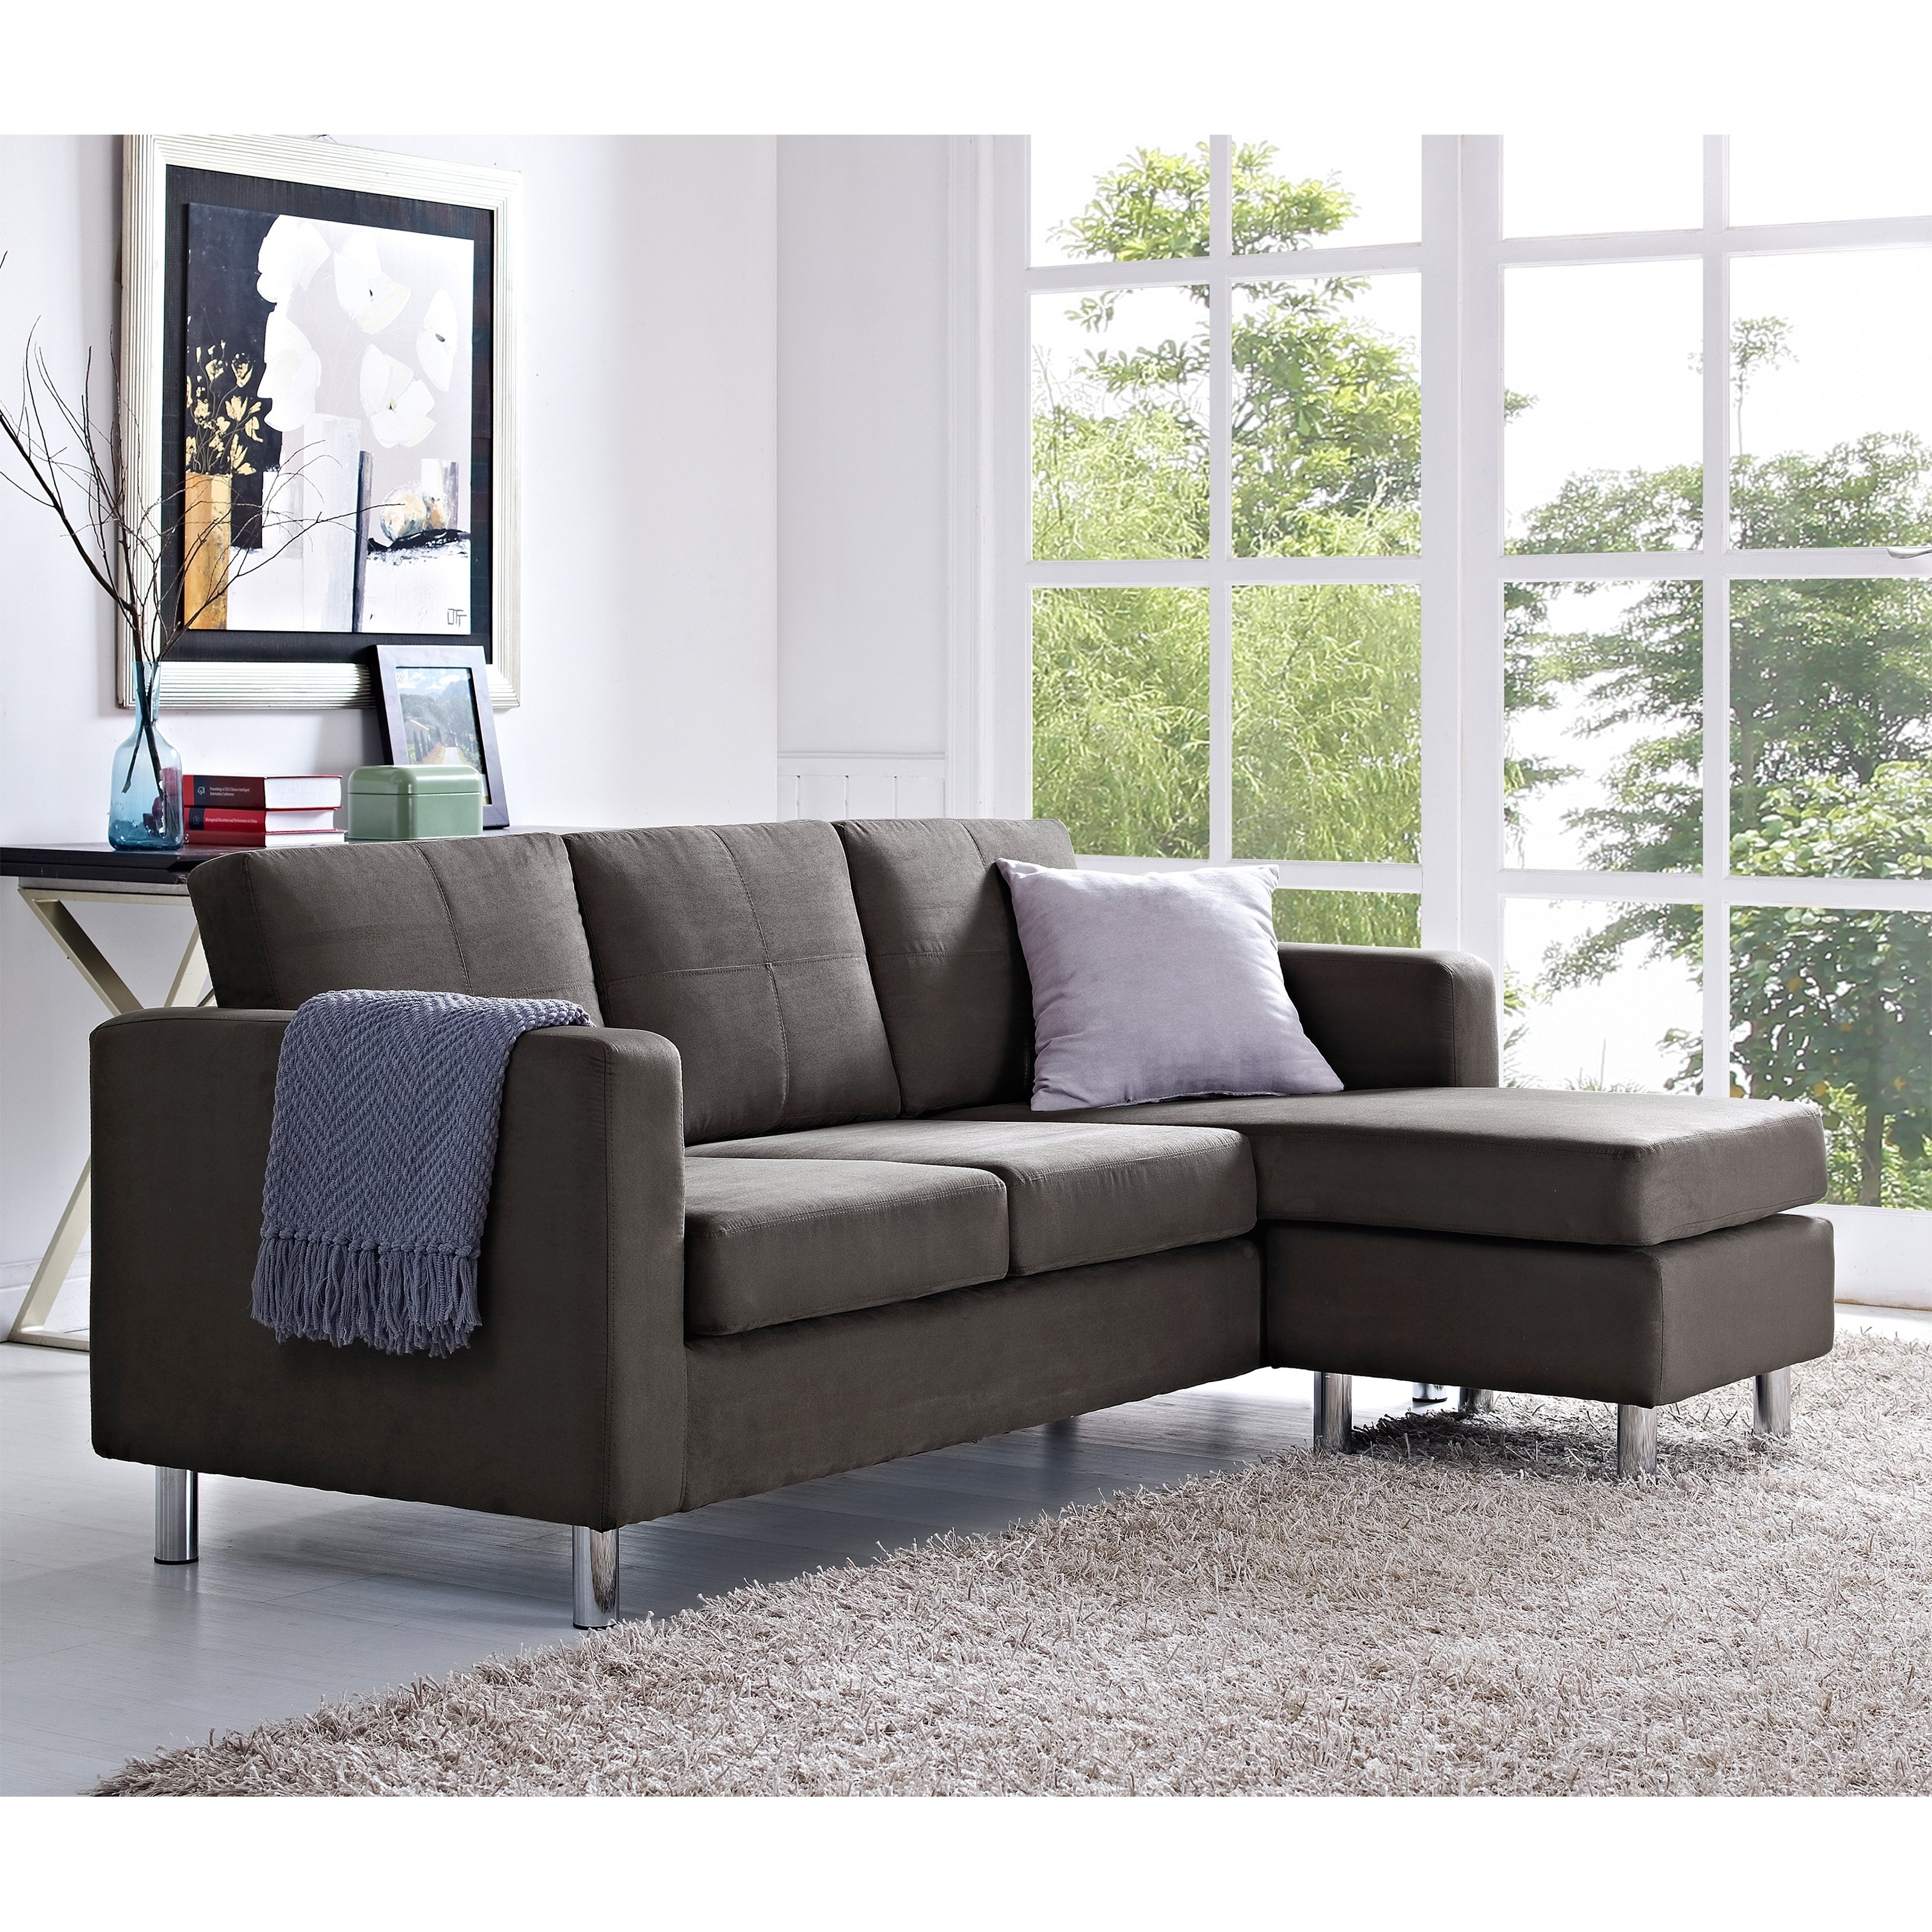 Dorel Living Small Spaces Sectional Chaise Sofa • Sectional Sofa With Small Spaces Sectional Sofas (View 3 of 10)